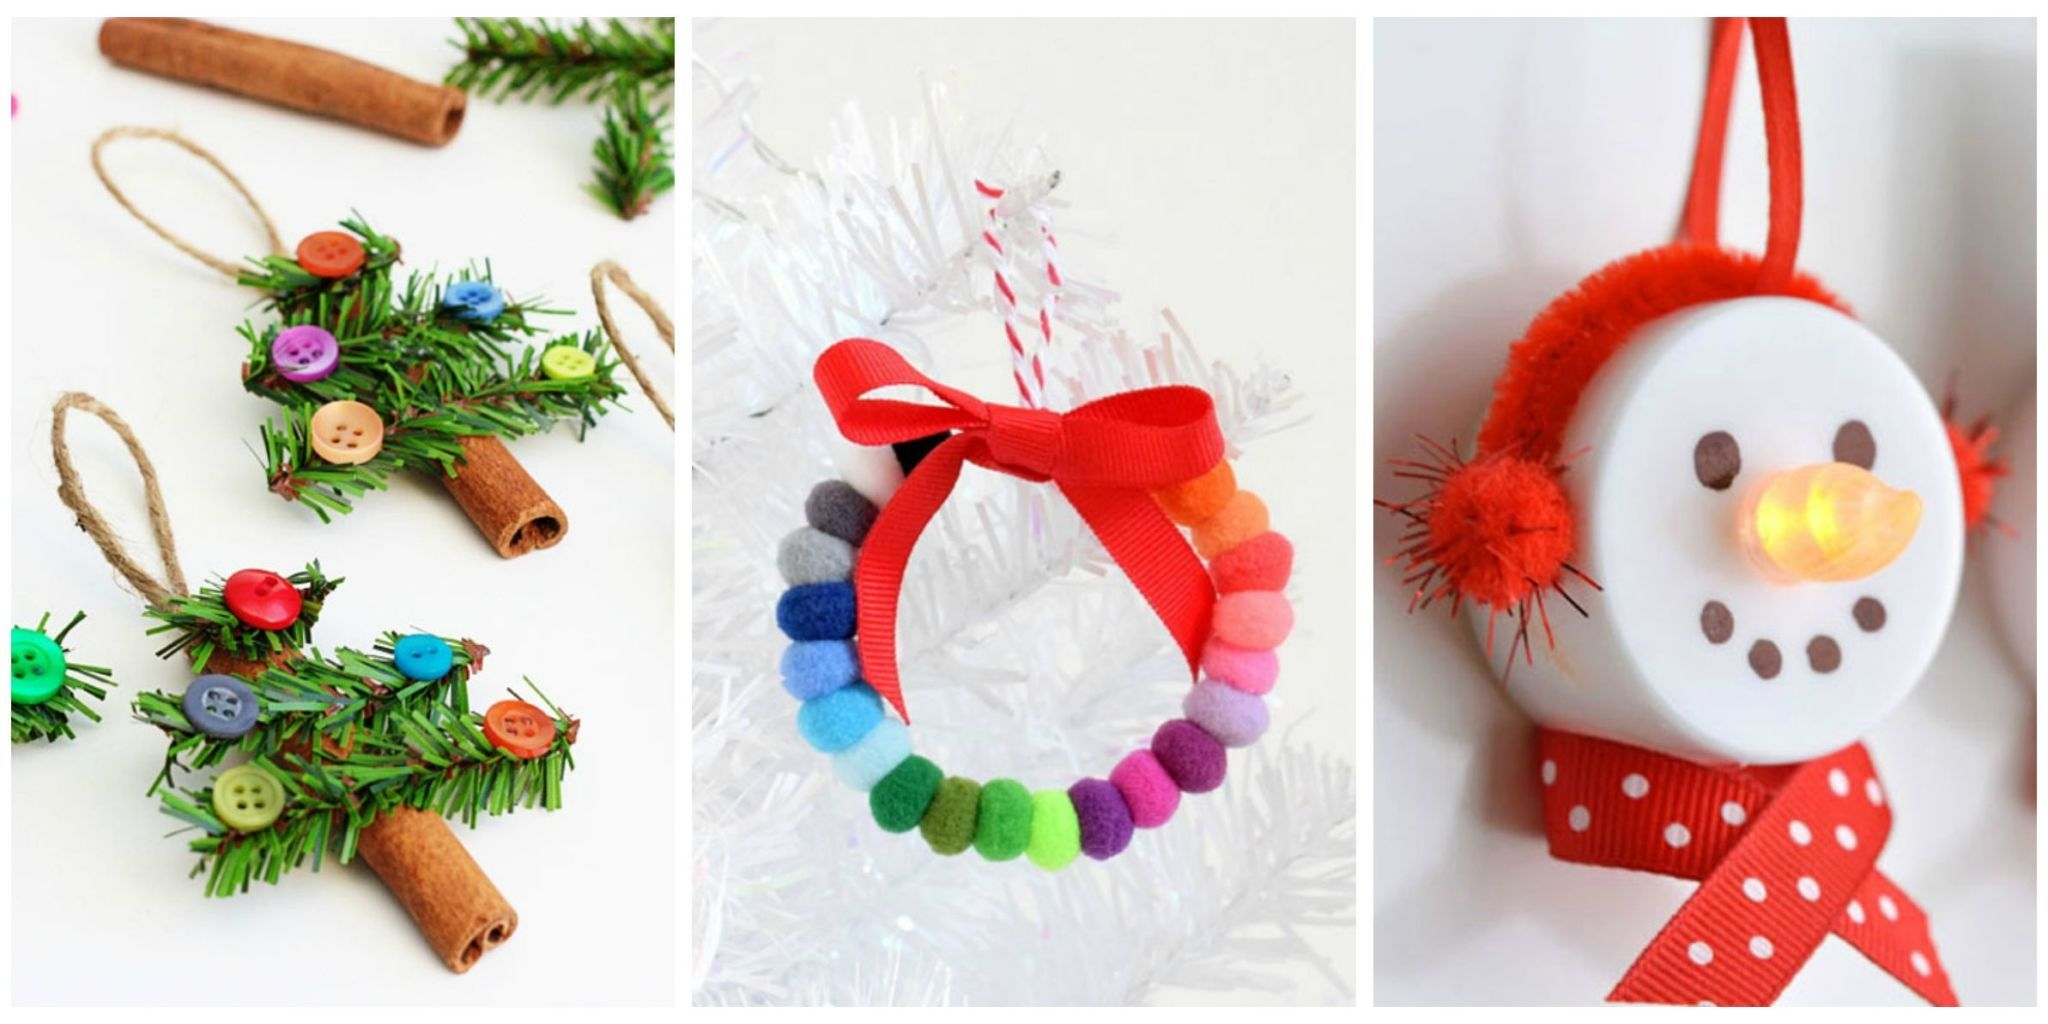 59 Unique DIY Christmas Ornaments , Easy Homemade Ornament Ideas